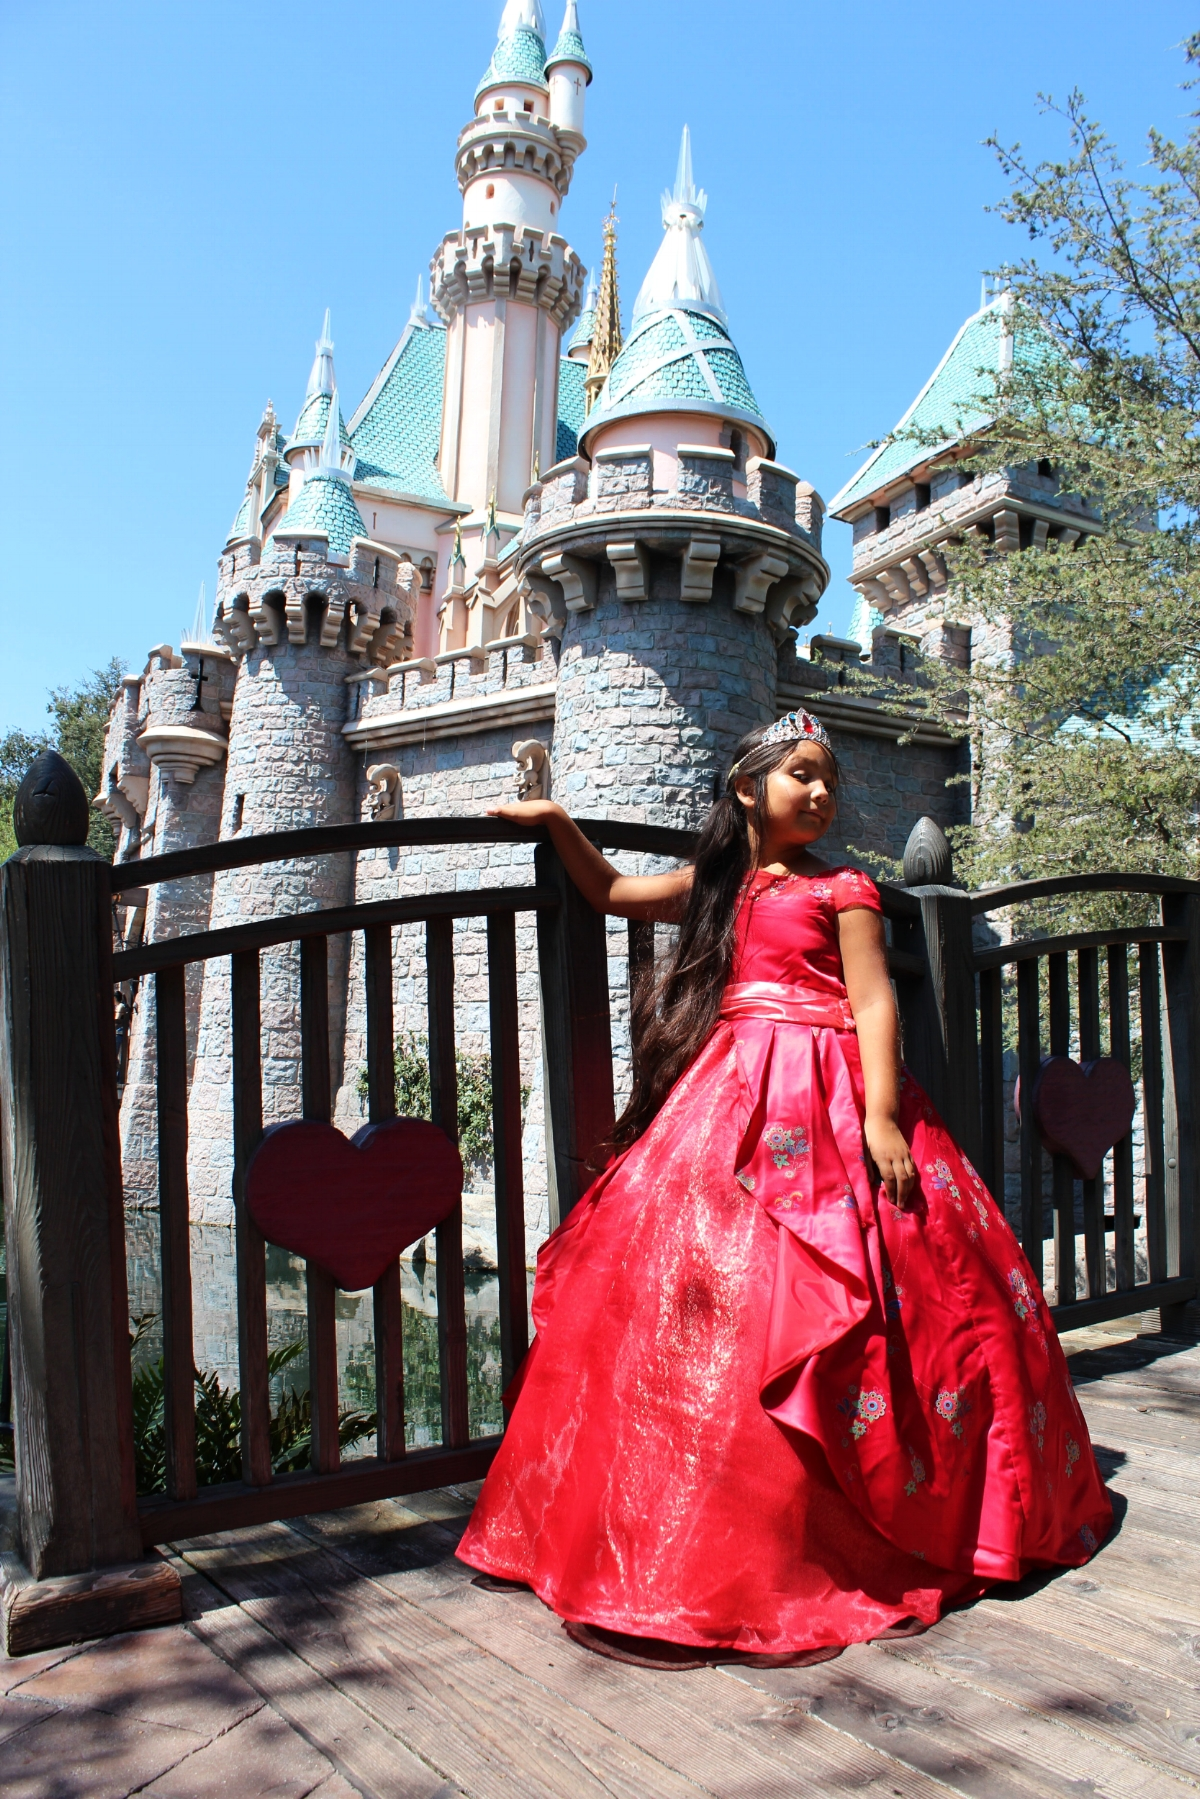 She looks like she is ready to take over the castle with that expression.The birthday girl at her happy place, Disneyland. She fits in quite well wouldn't you say?